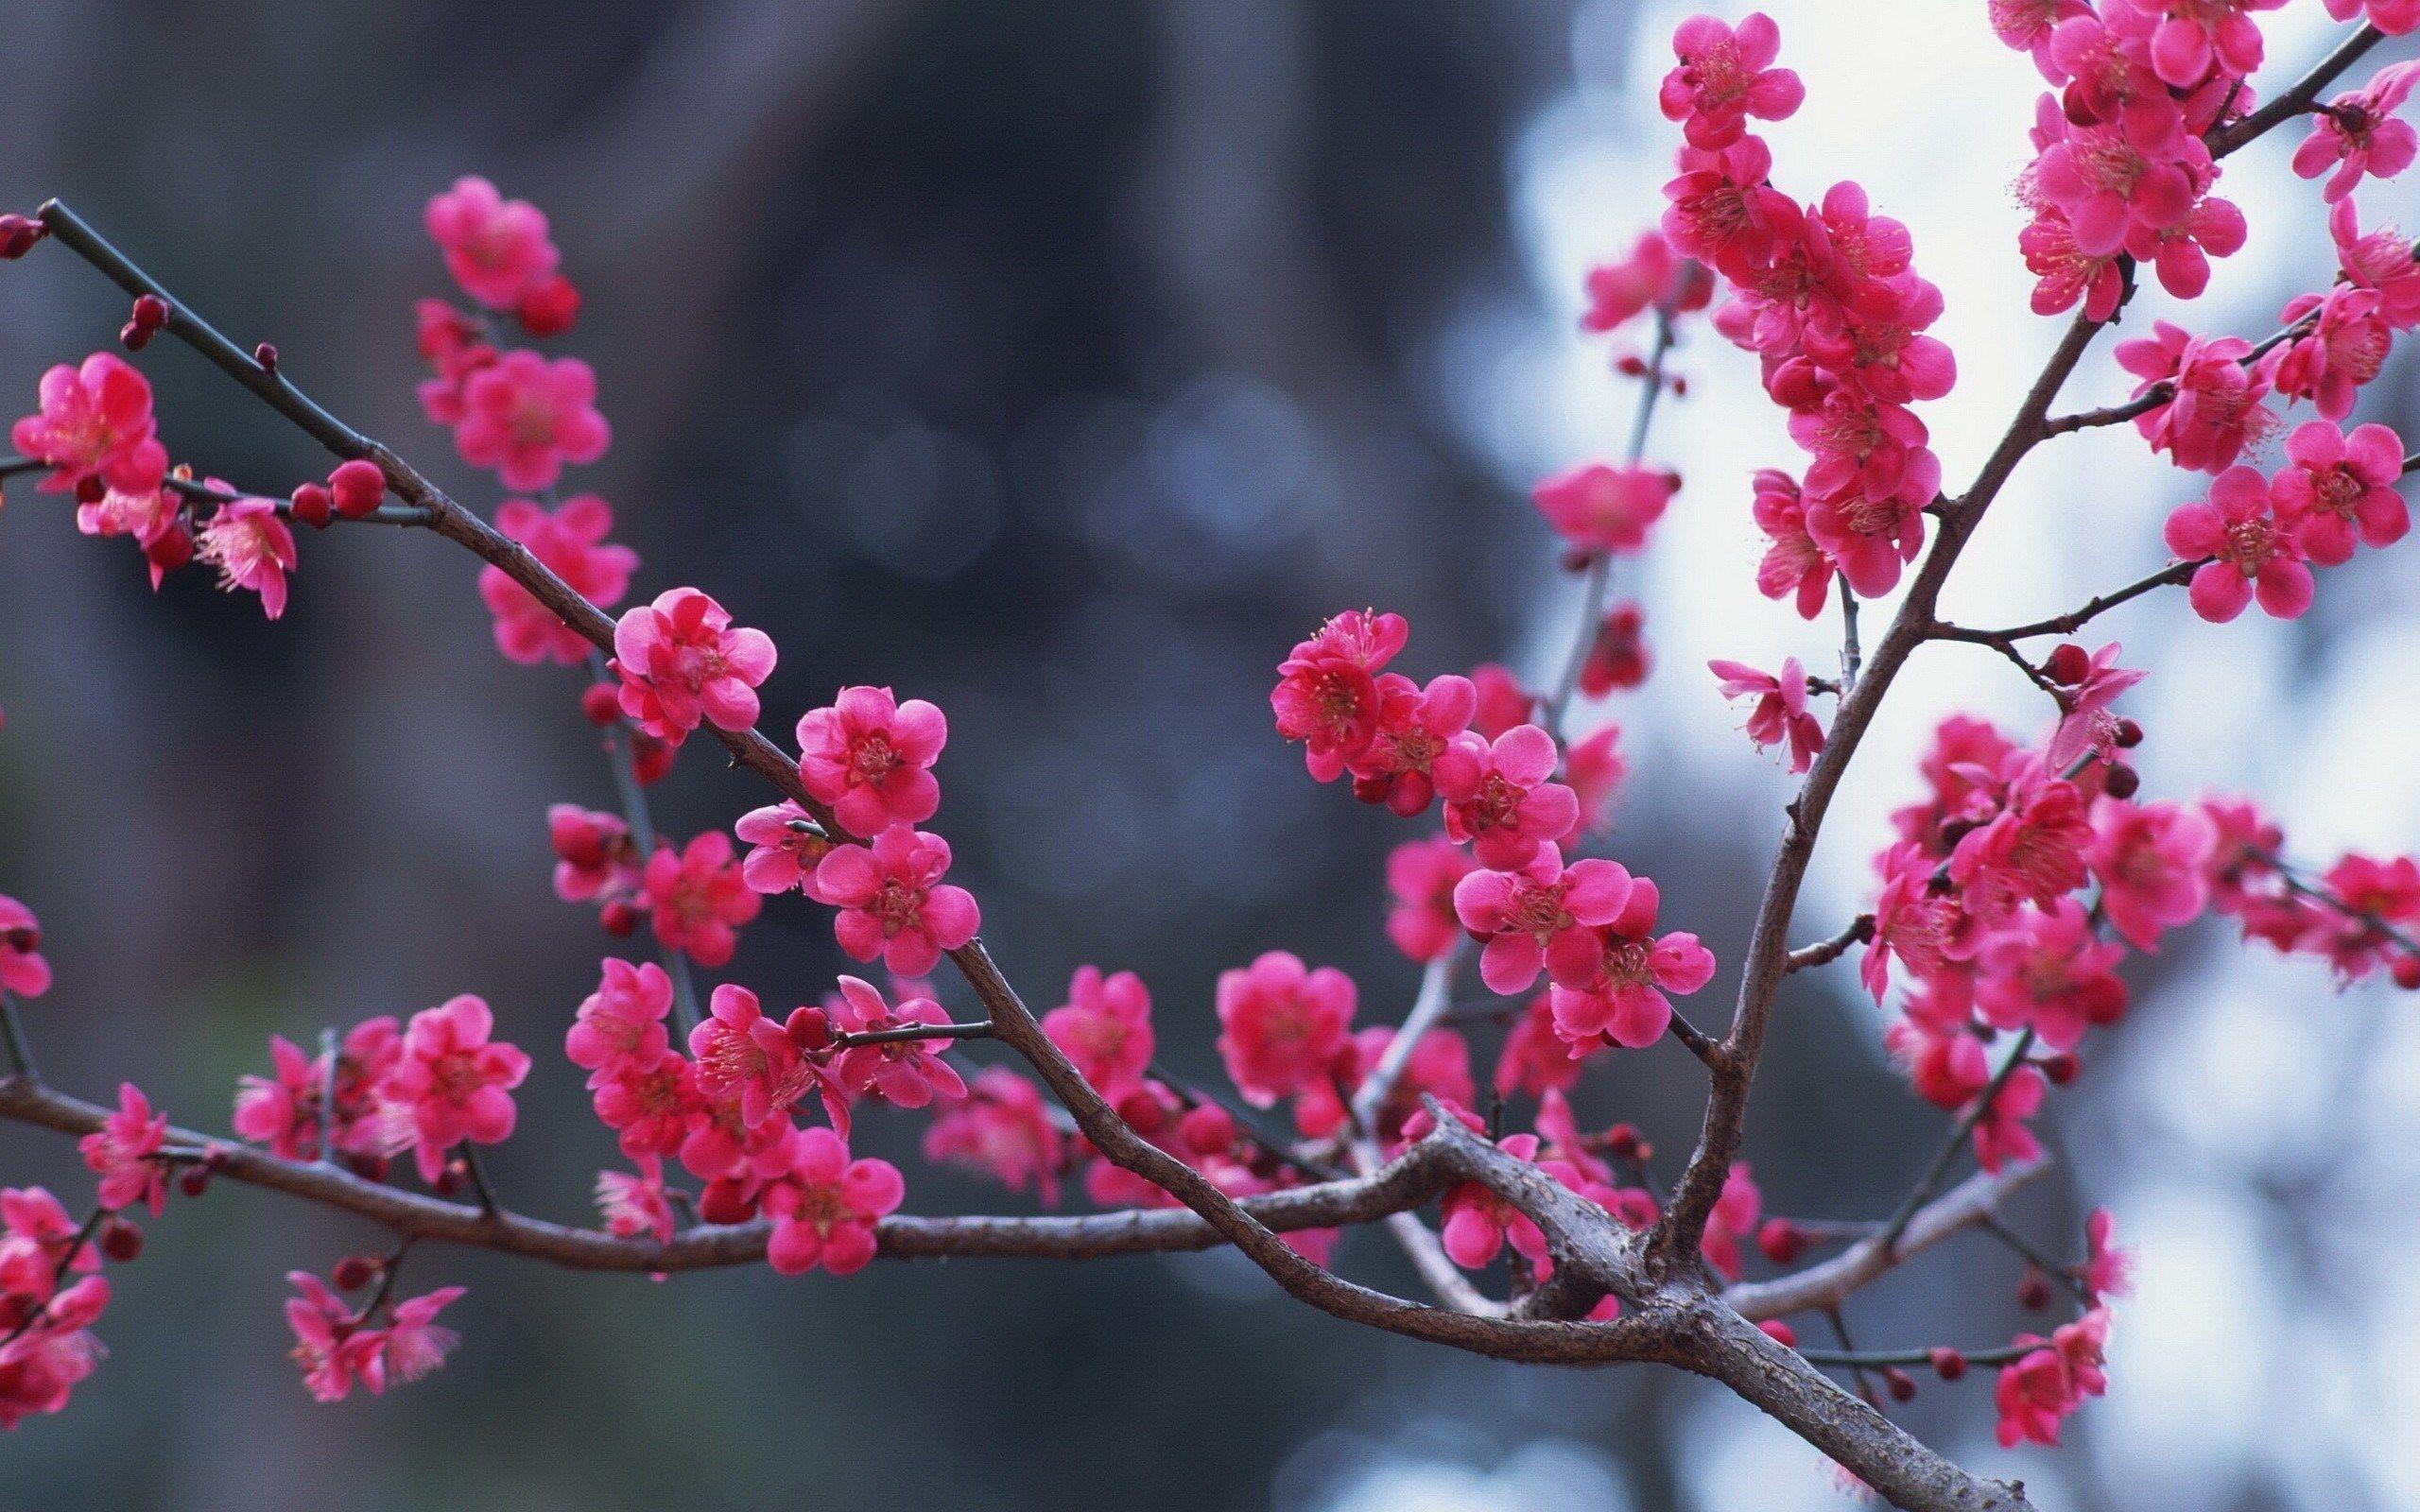 Spring Nature Wallpapers with Pink Flower Branches